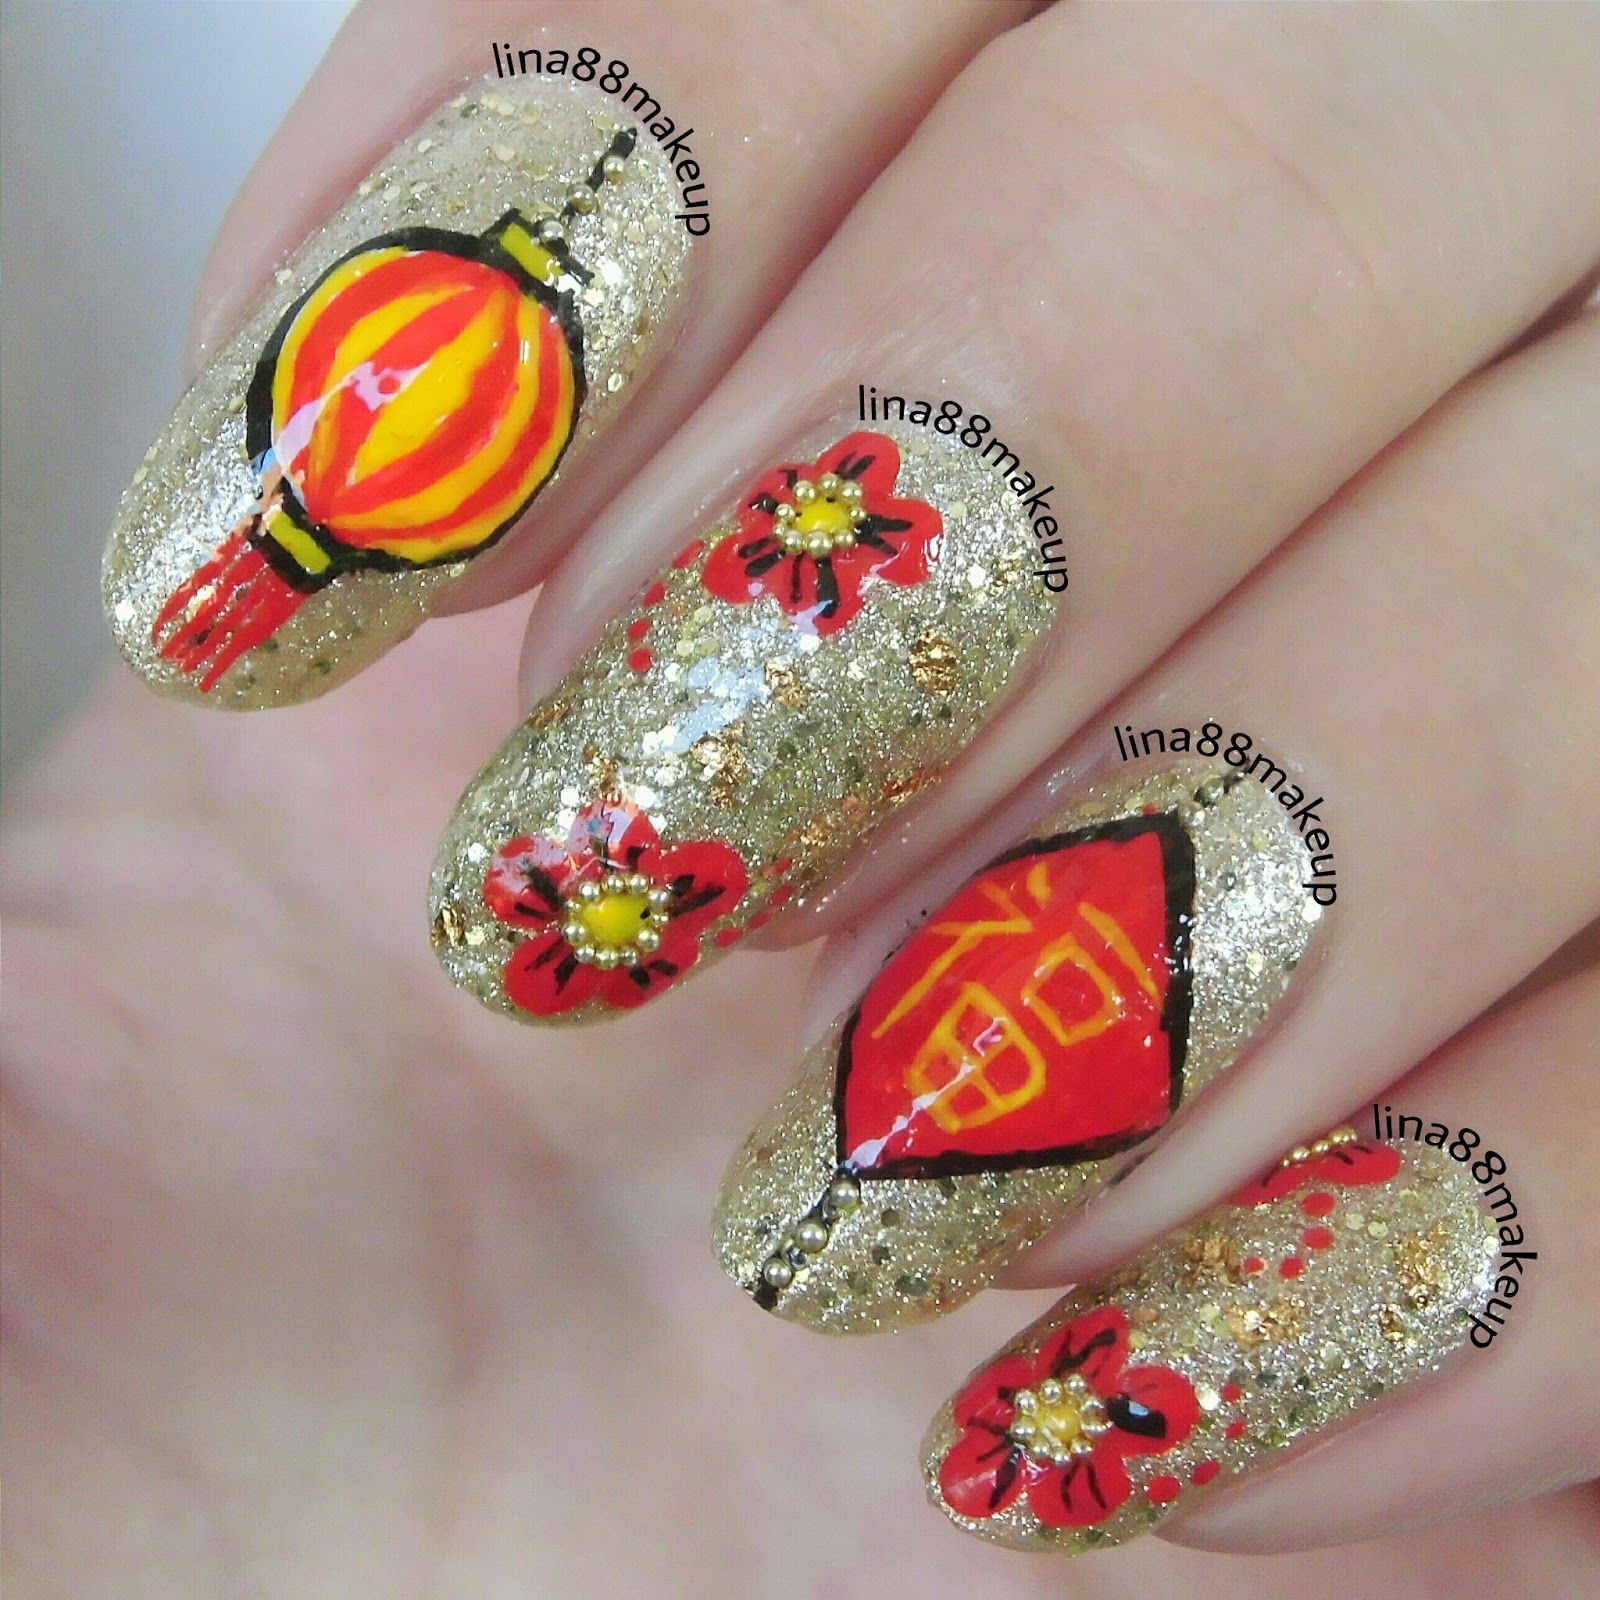 Chinese new year 2015 nail art design google search nail art chinese new year 2015 nail art design google search prinsesfo Gallery